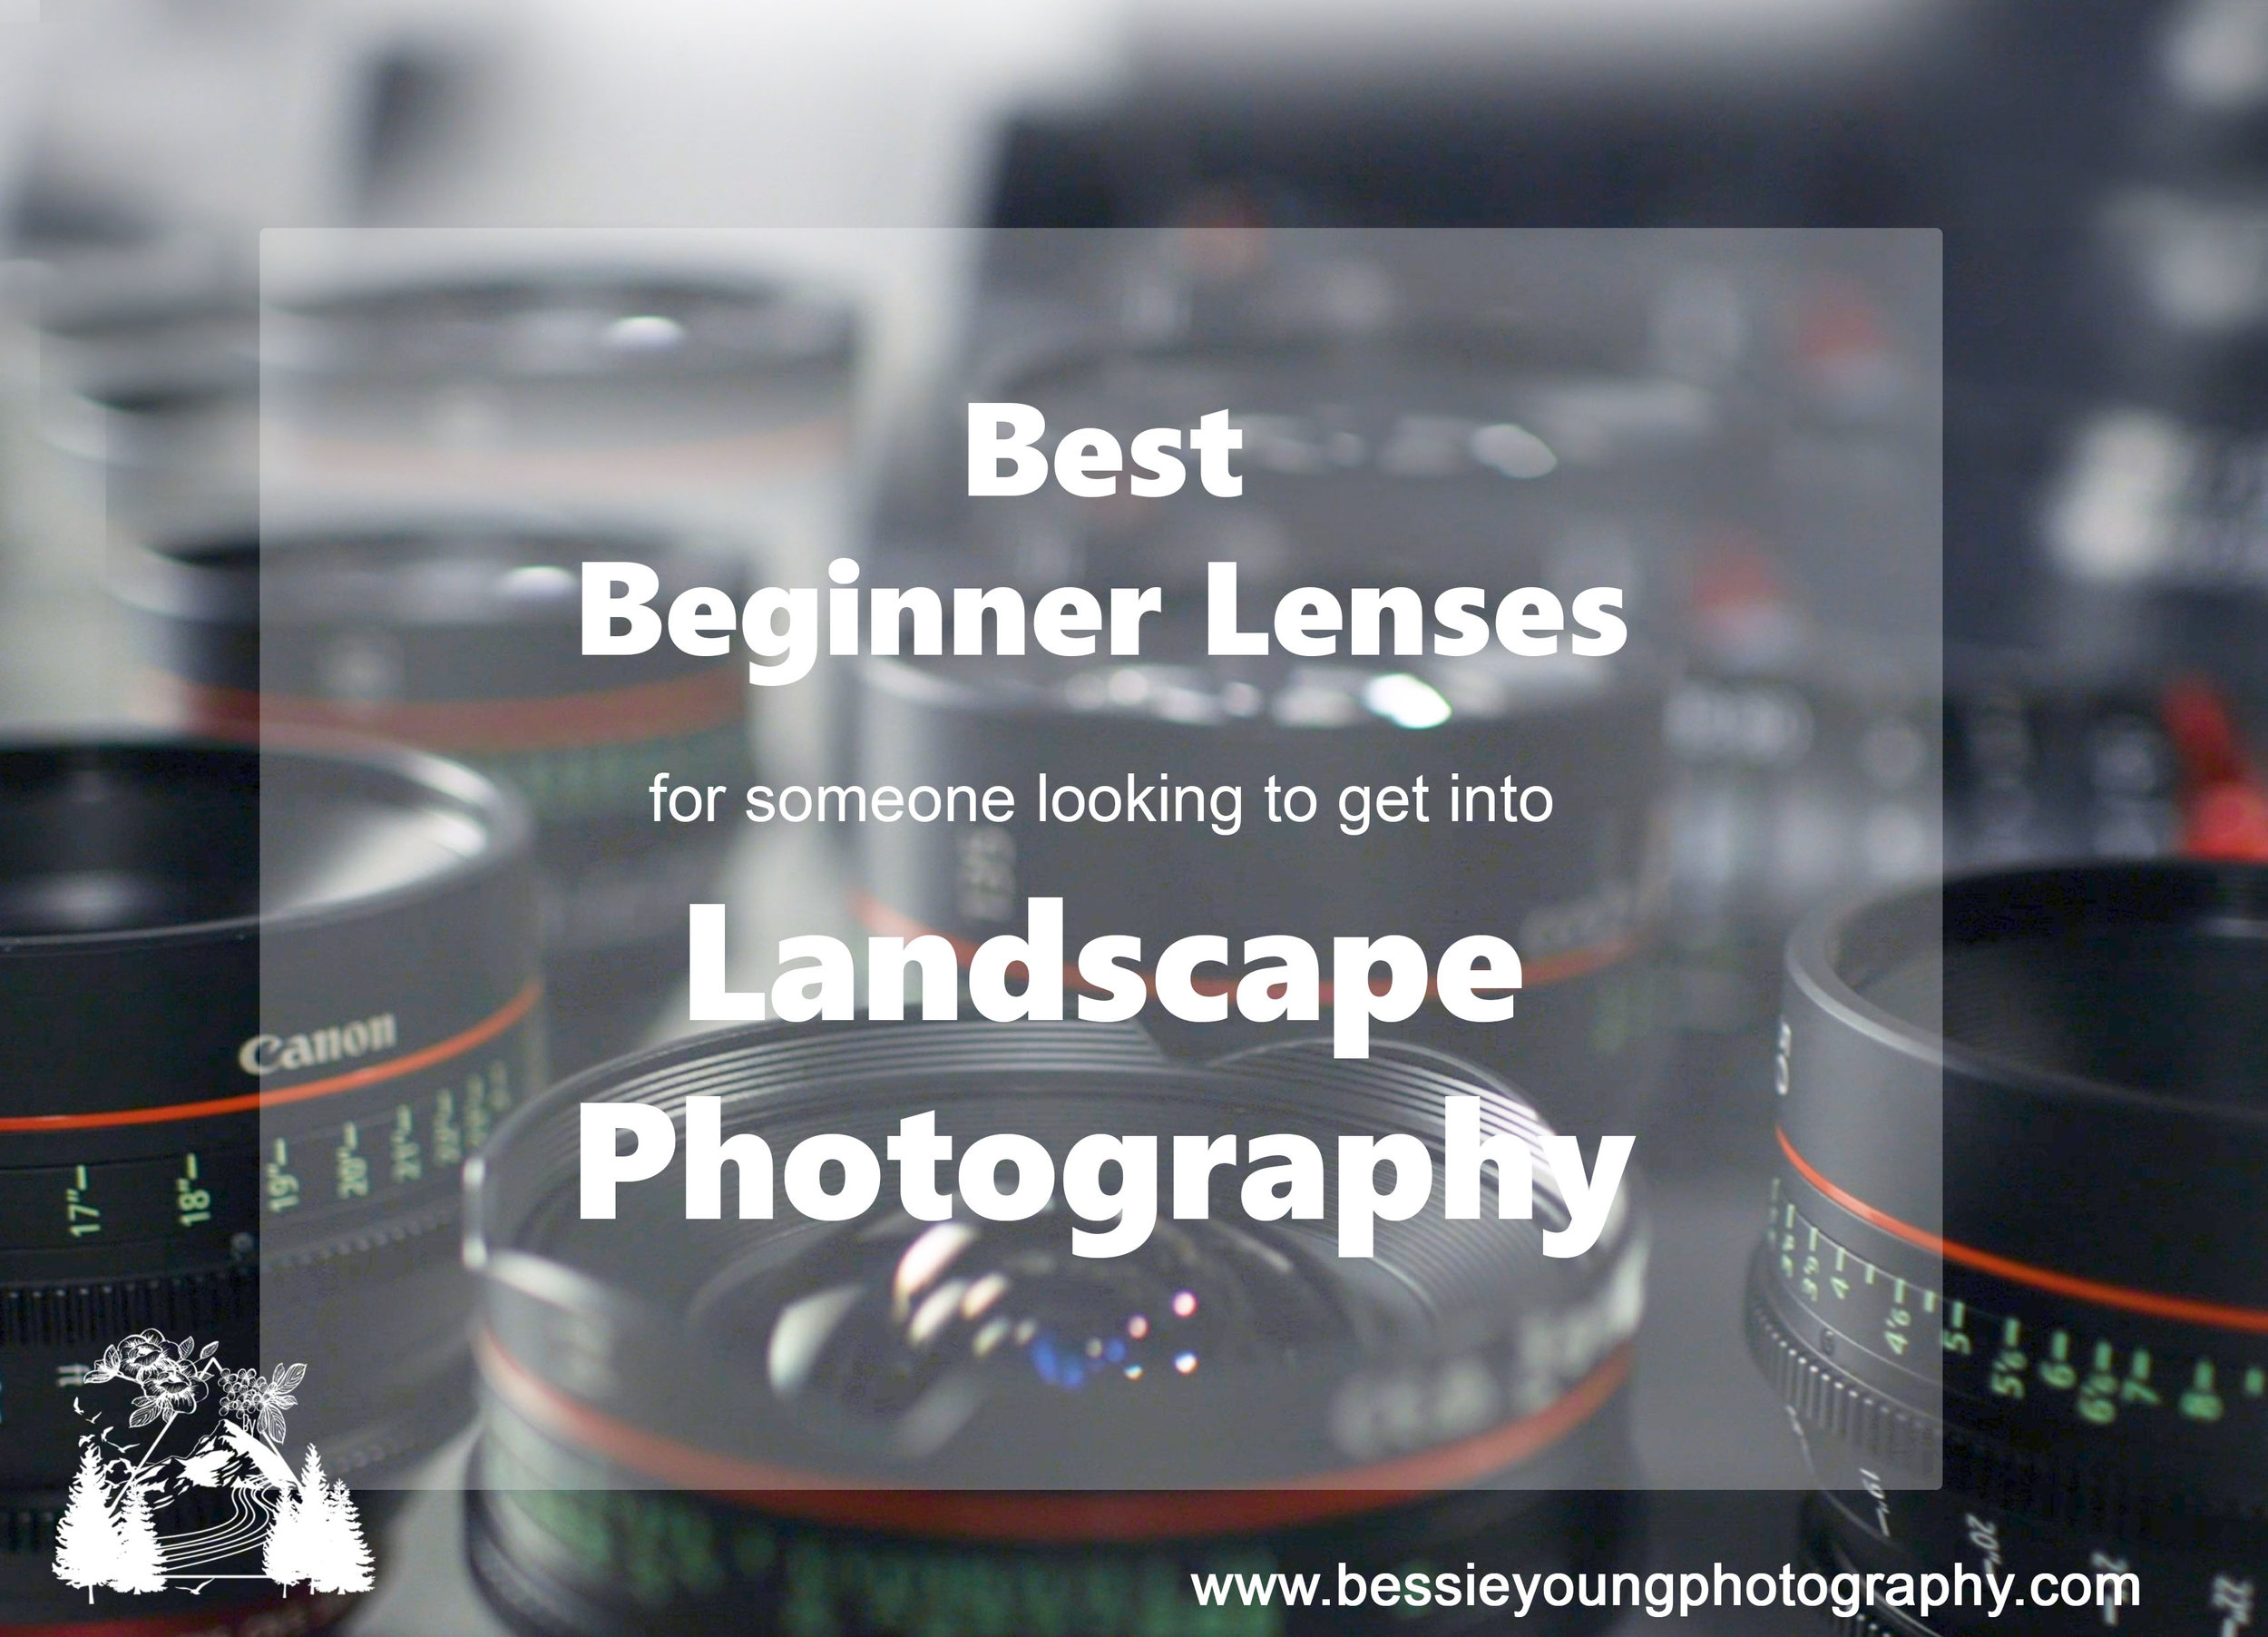 Best Beginner Lenses for Landscape Photography by Bessie Young Photography Tips and Tricks.jpg